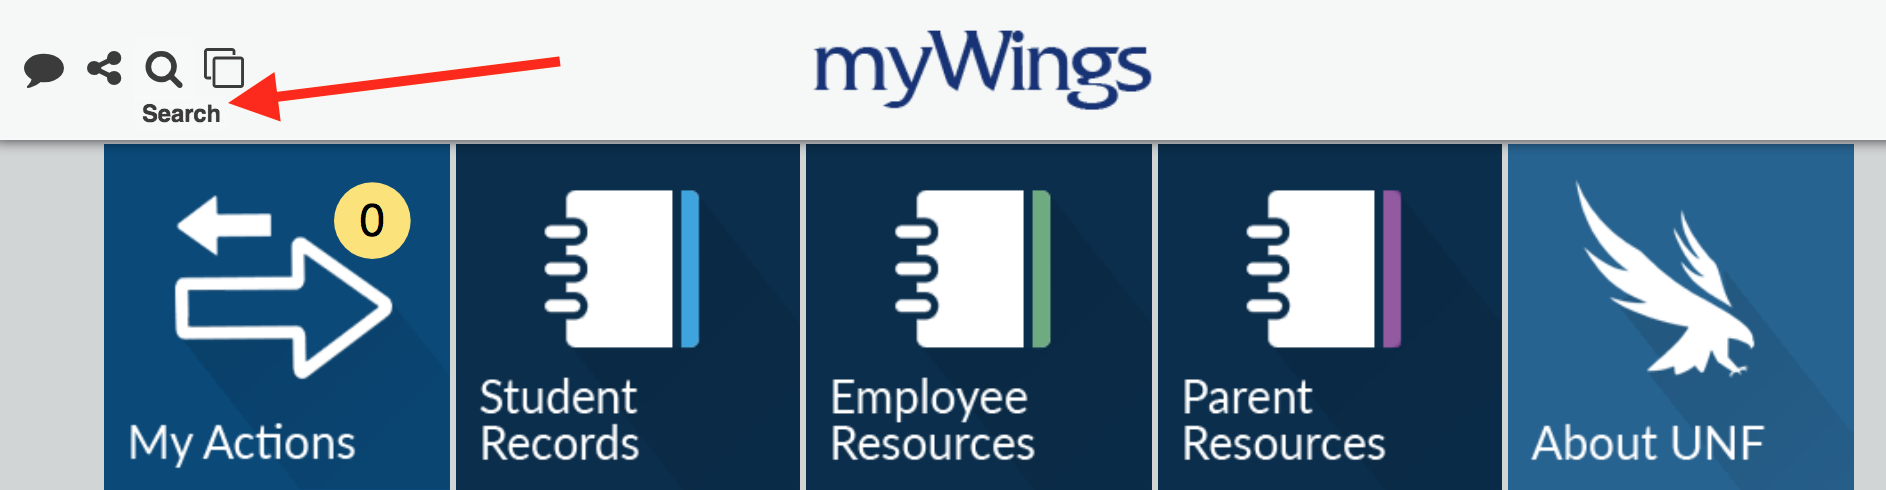 myWings Search screenshot